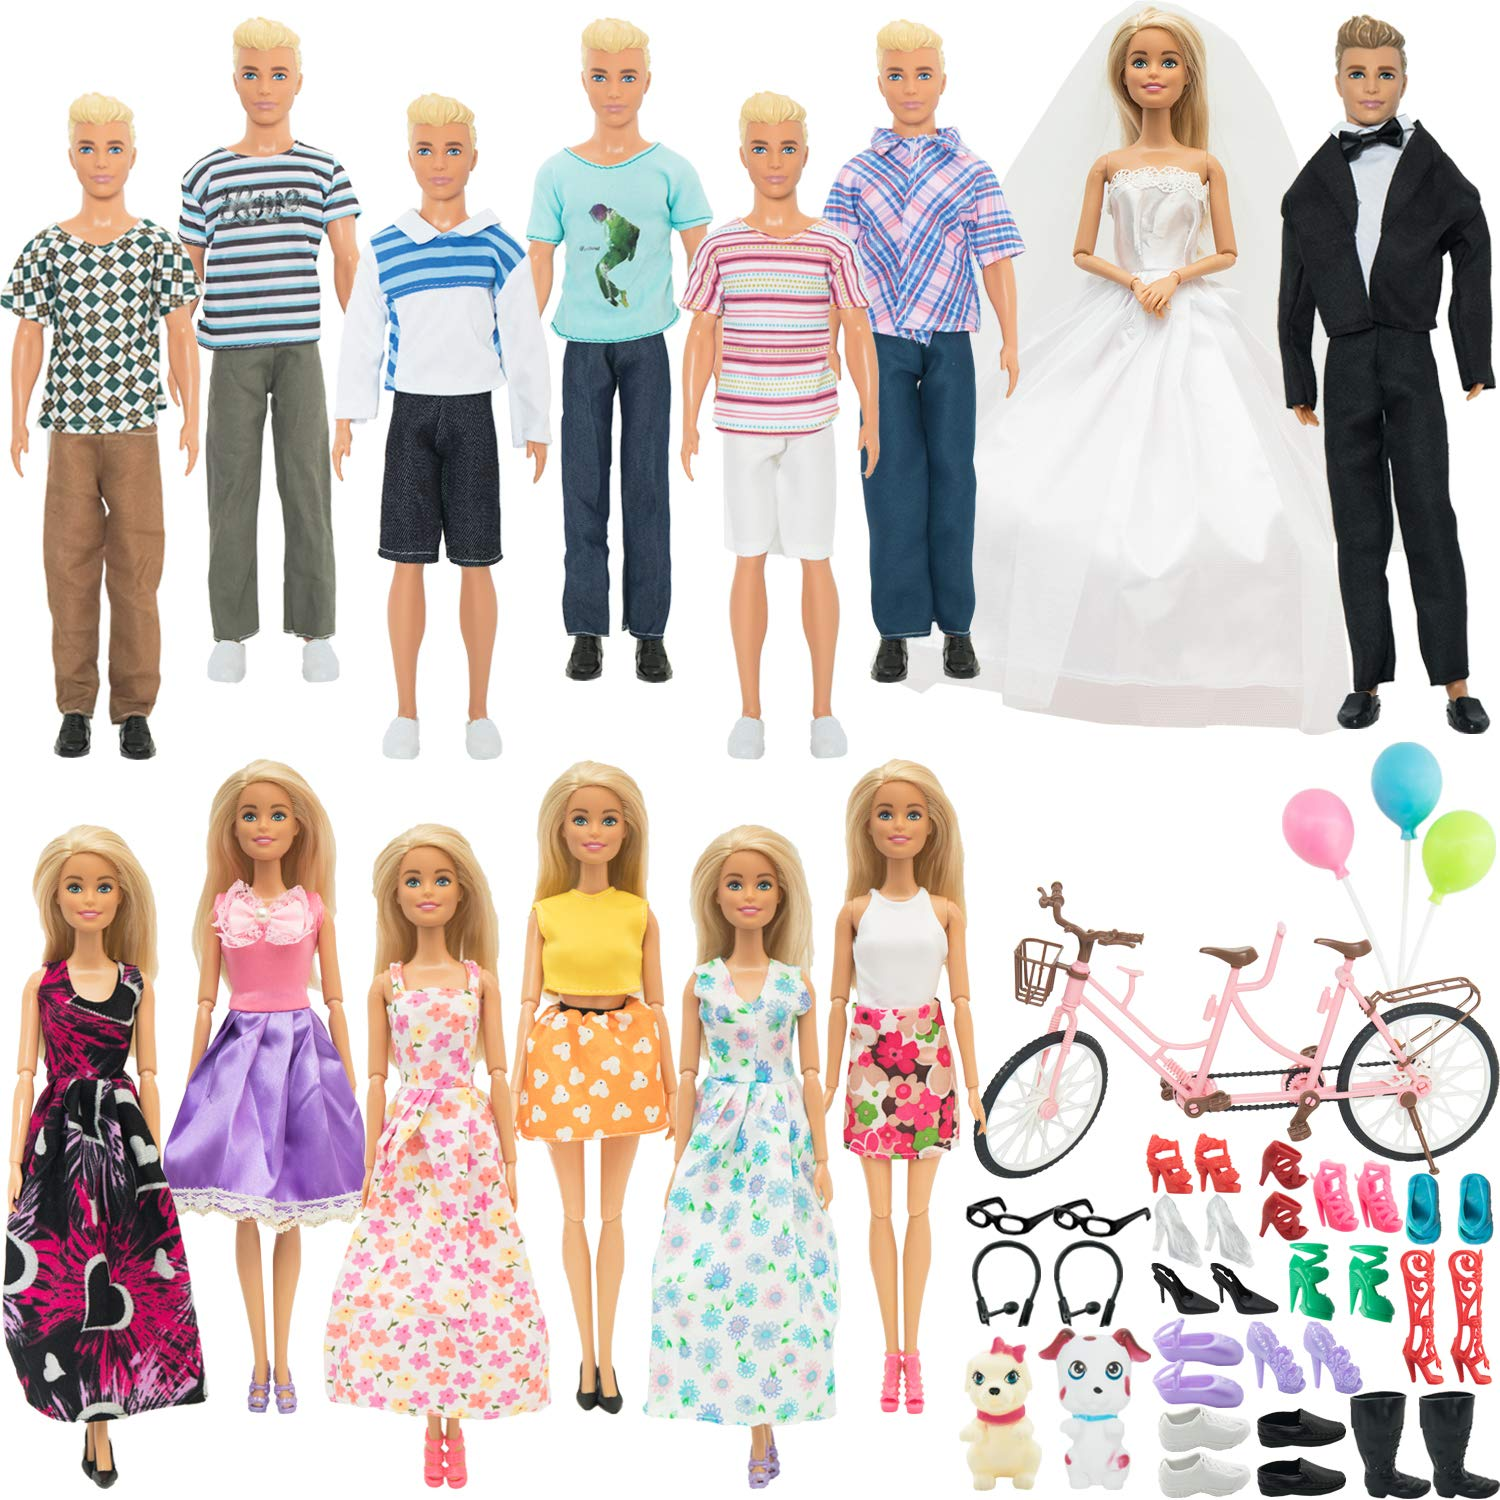 SOTOGO 58 Pieces Doll Clothes and Accessories for Barbie Ken Dolls Lovers Life Playset Include 14 Set Handmade Doll Groom Suit,Wedding Dress,Casual Clothes with 34 Pieces Different Doll Accessories